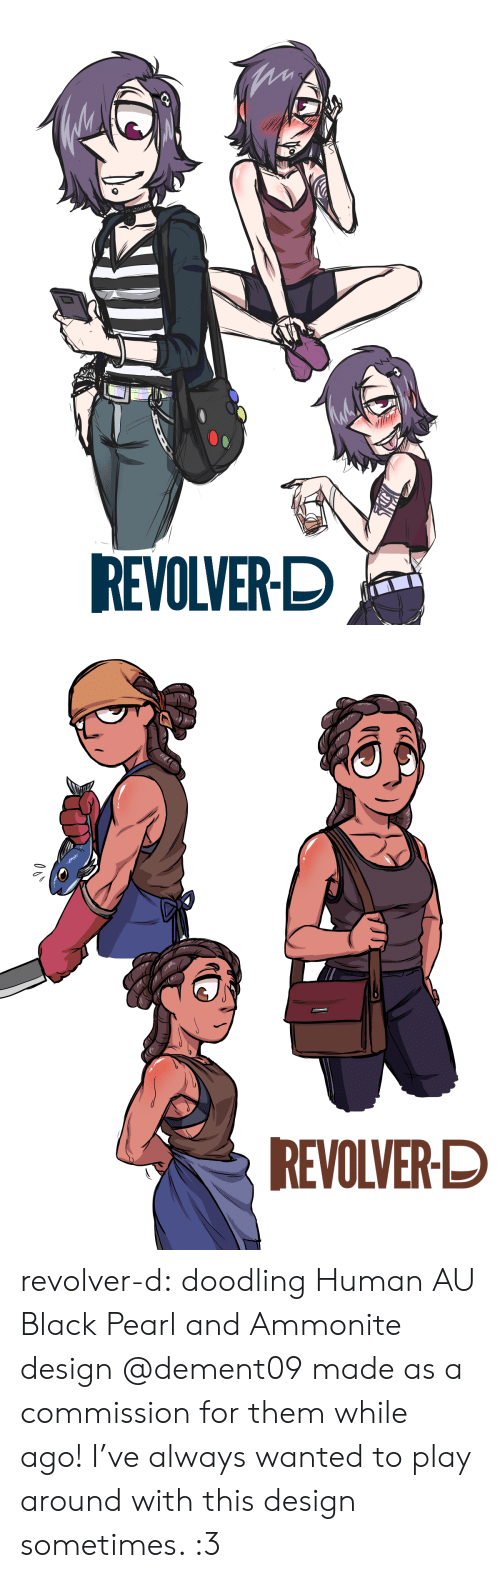 Tumblr, Twitter, and Black: REVOLVER-D   REVOLVER-D revolver-d:    doodling Human AU Black Pearl and Ammonite design @dement09made as a commission for them while ago!I've always wanted to play around with this design sometimes. :3